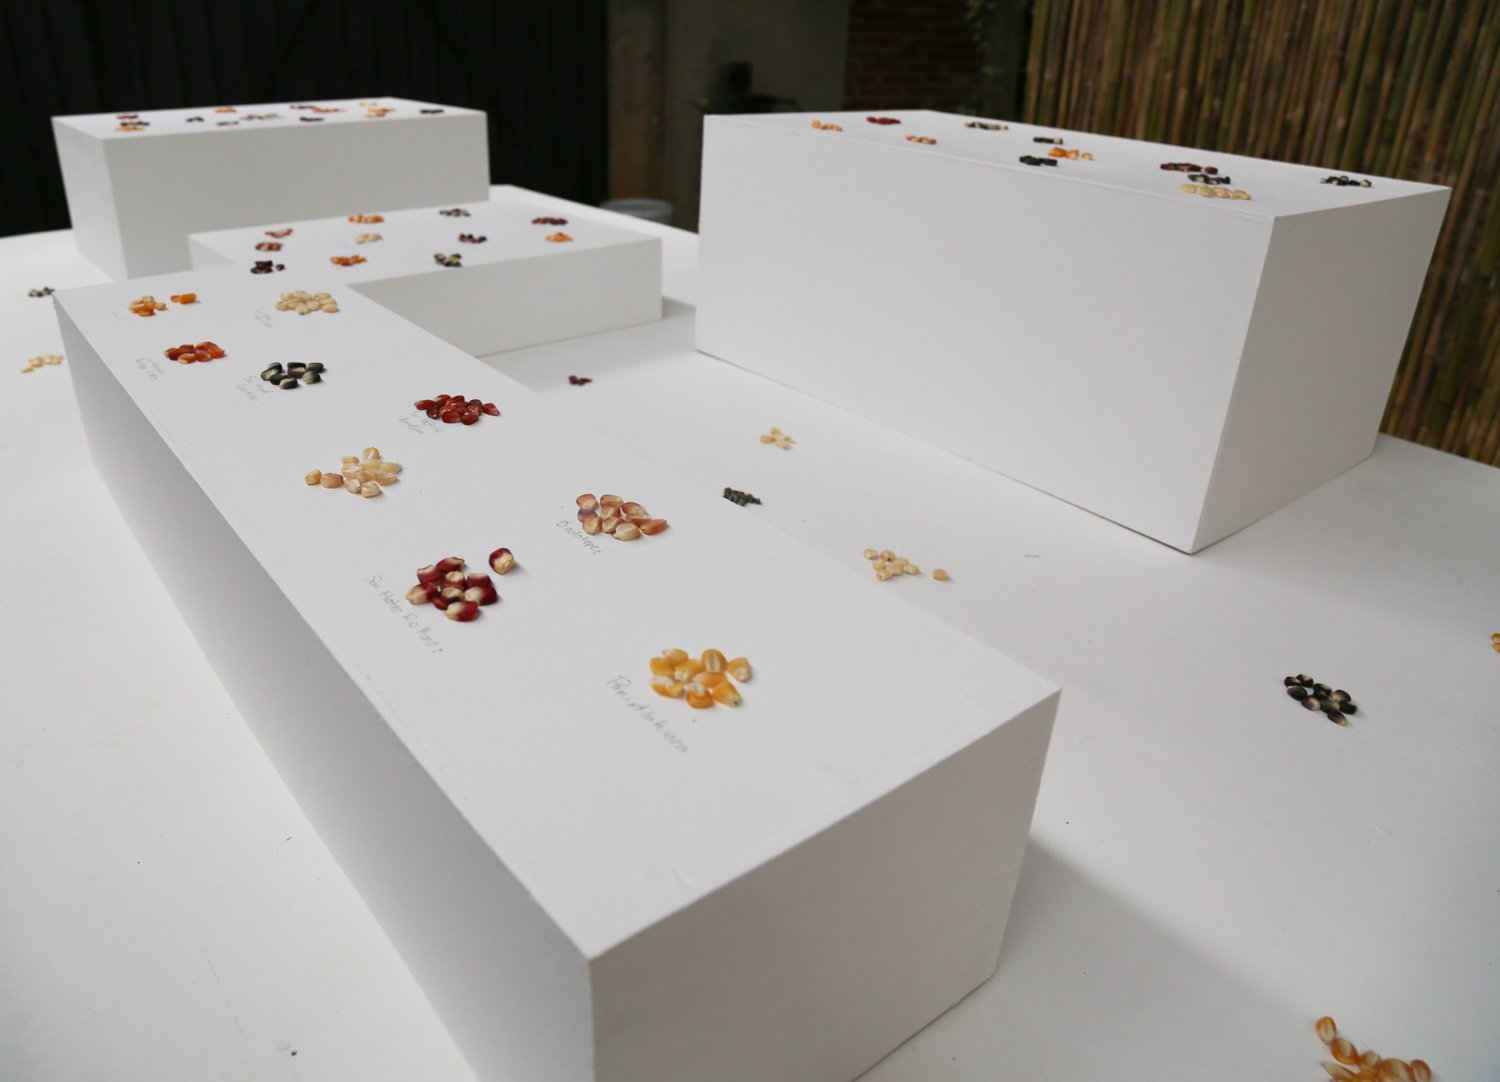 varietals of corn placed on tables to represent the altitude and location of the endemic species